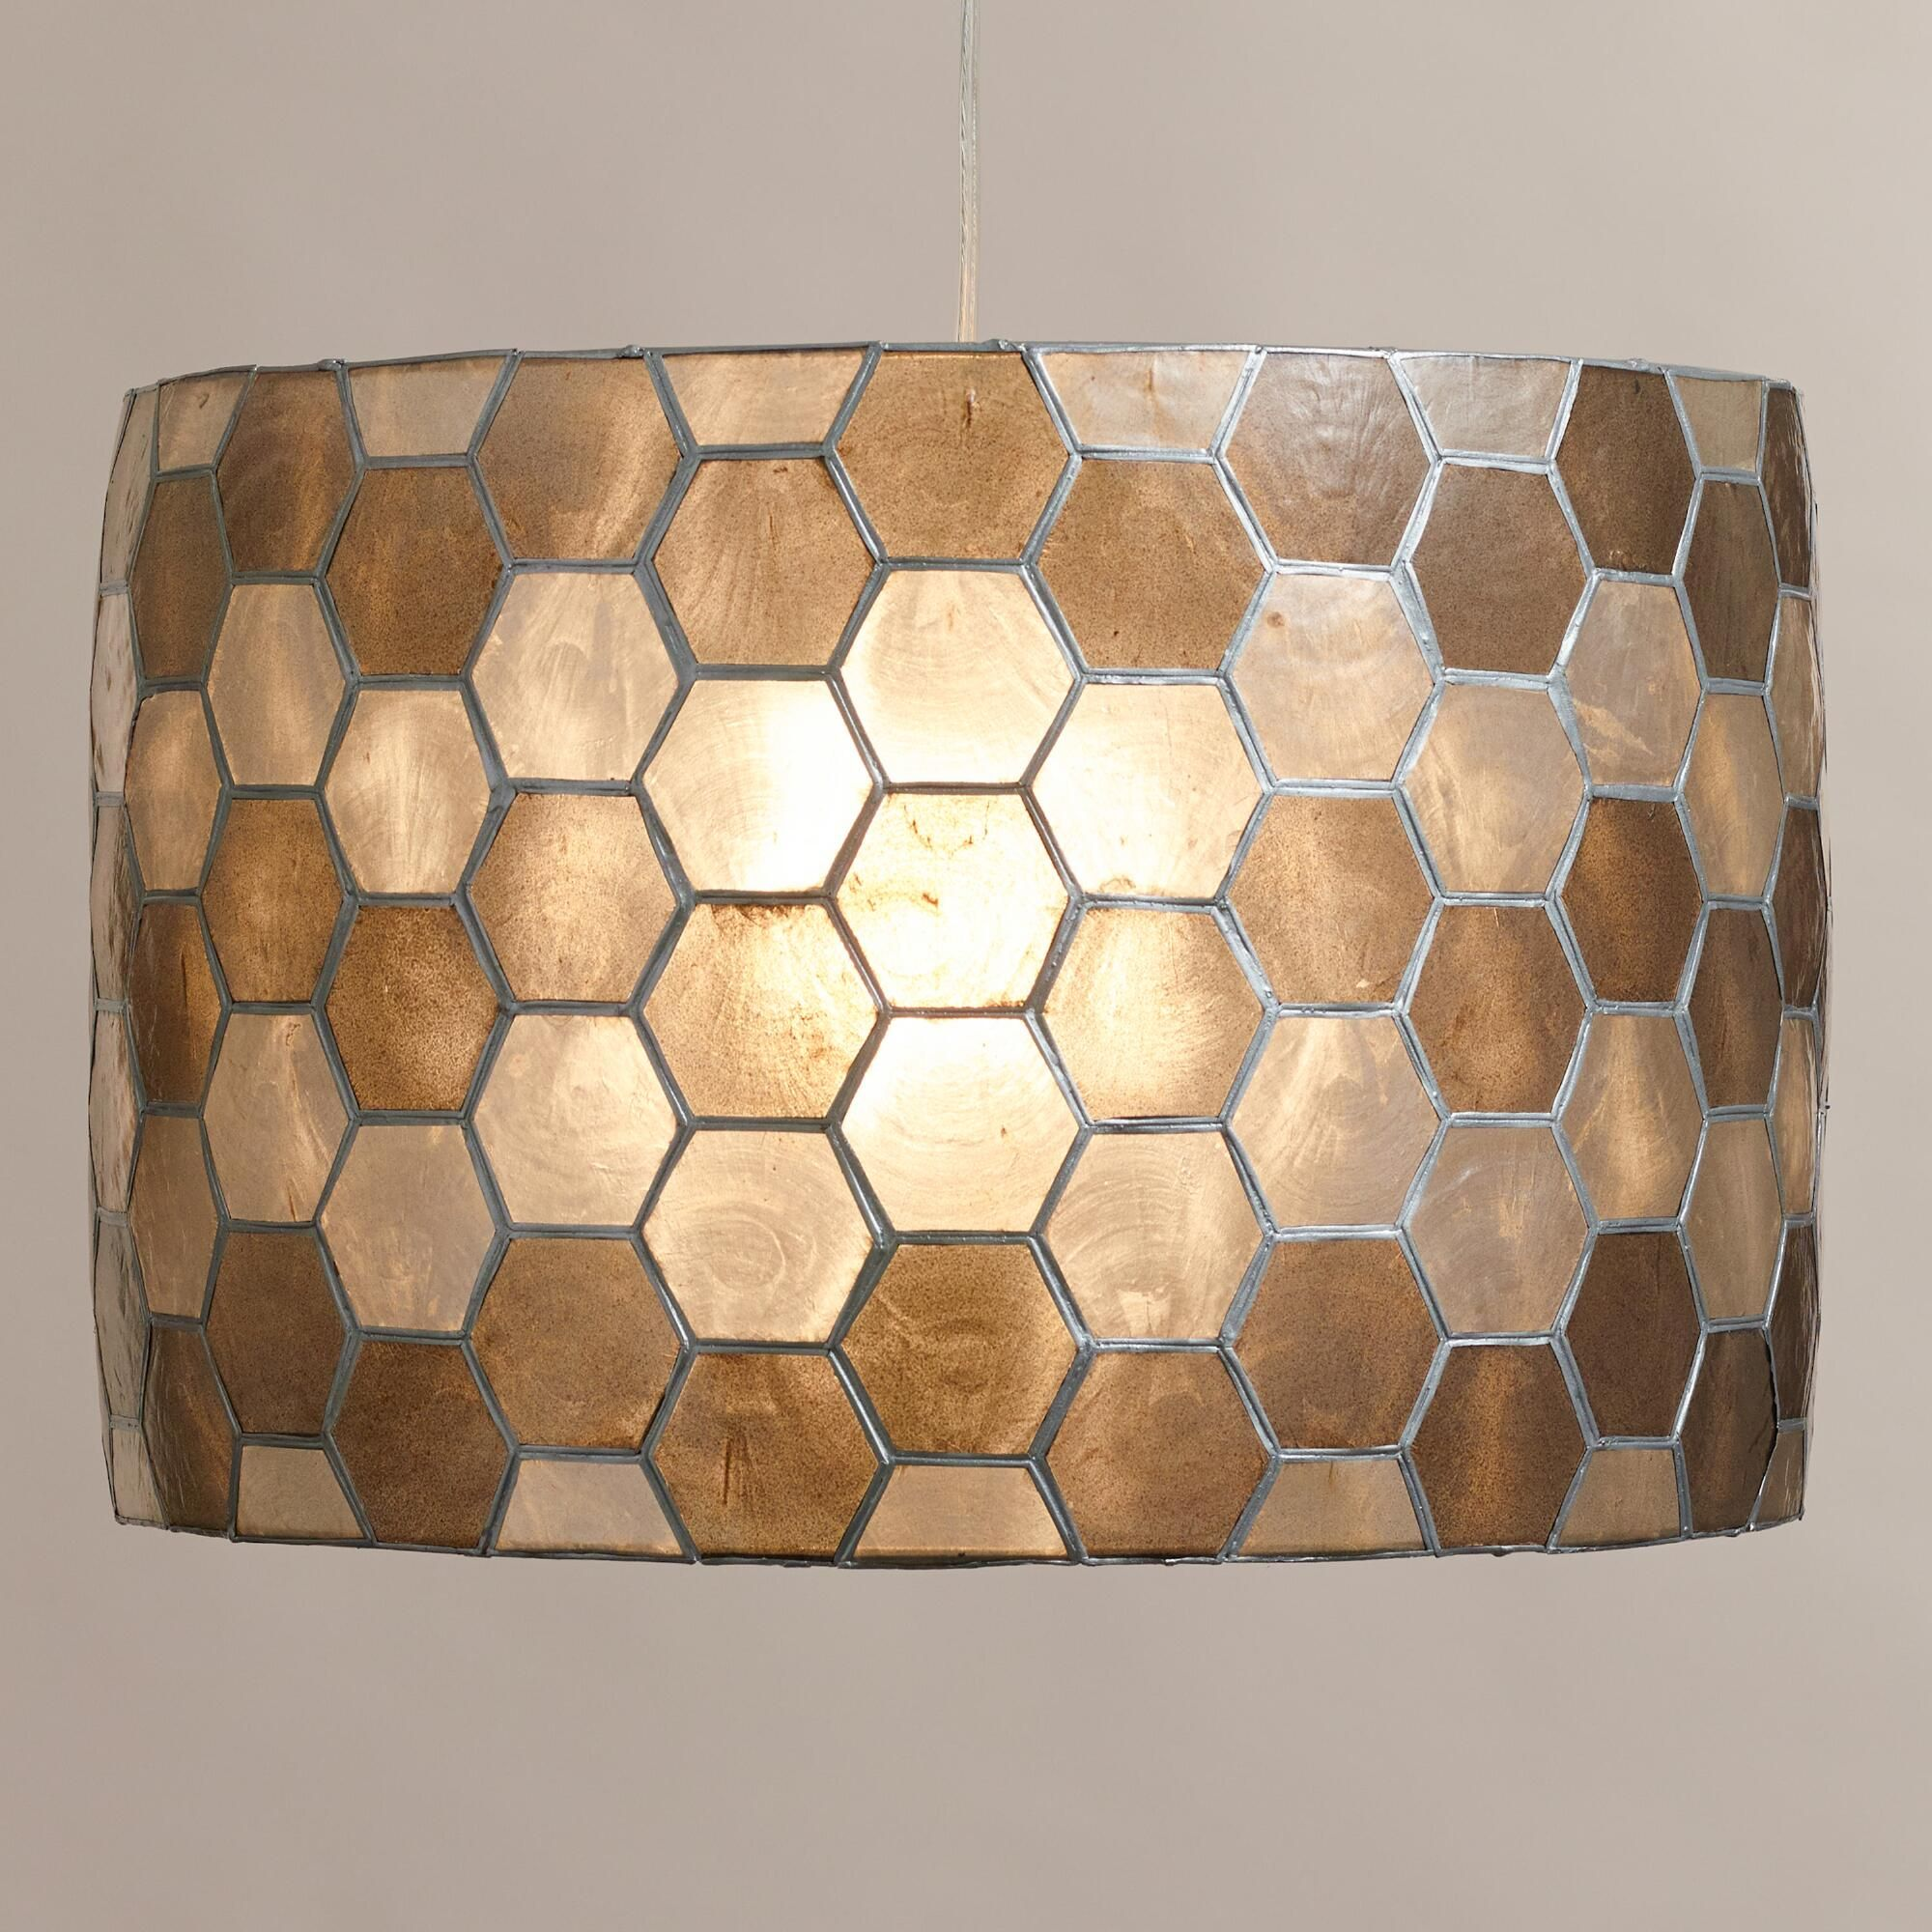 Handcrafted of naturally harvested capiz shells cut and assembled into a honeycomb design by artisans in the Philippines, our exclusive drum pendant is a striking work of art perfect for the living, dining or bedroom.